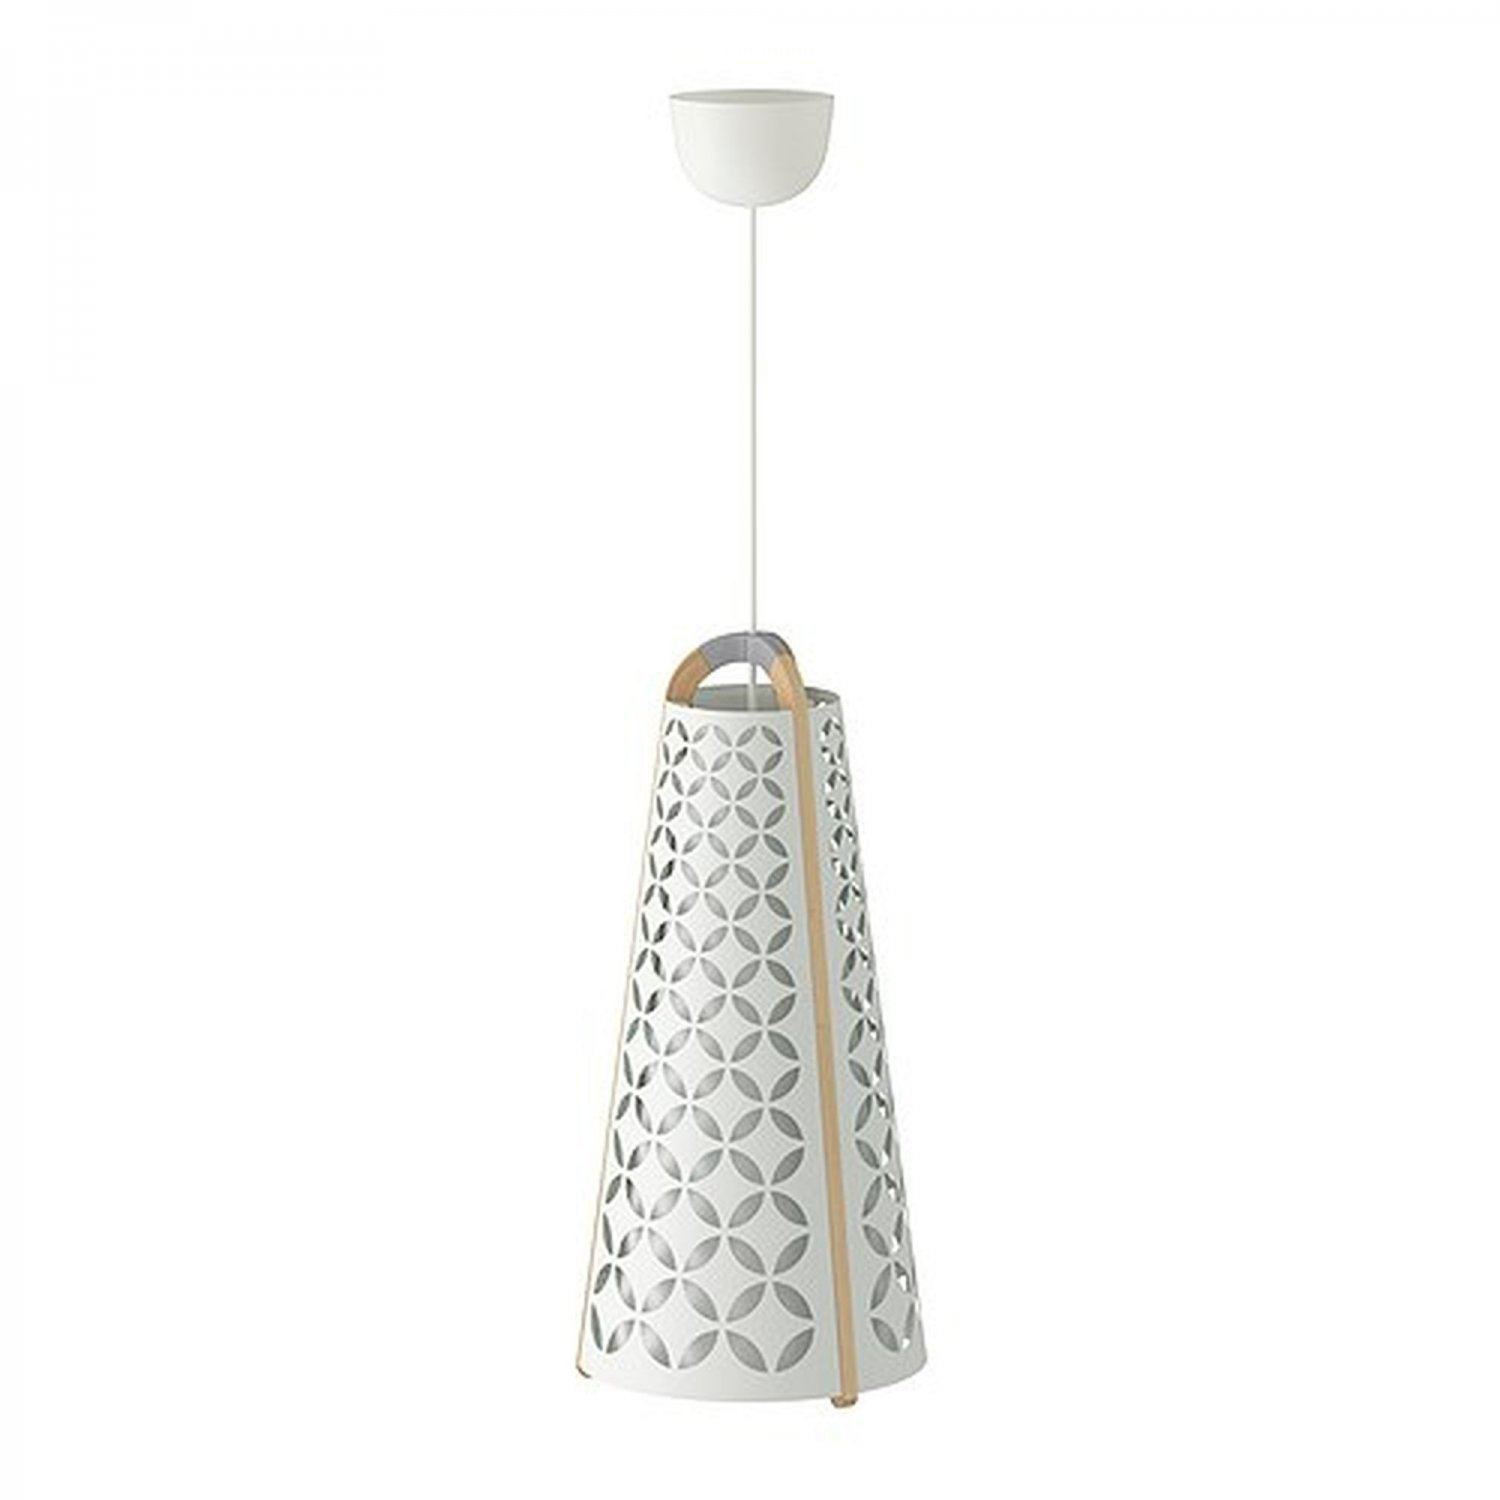 Ikea Torna Pendant Lamp Ceiling Light Modern White And